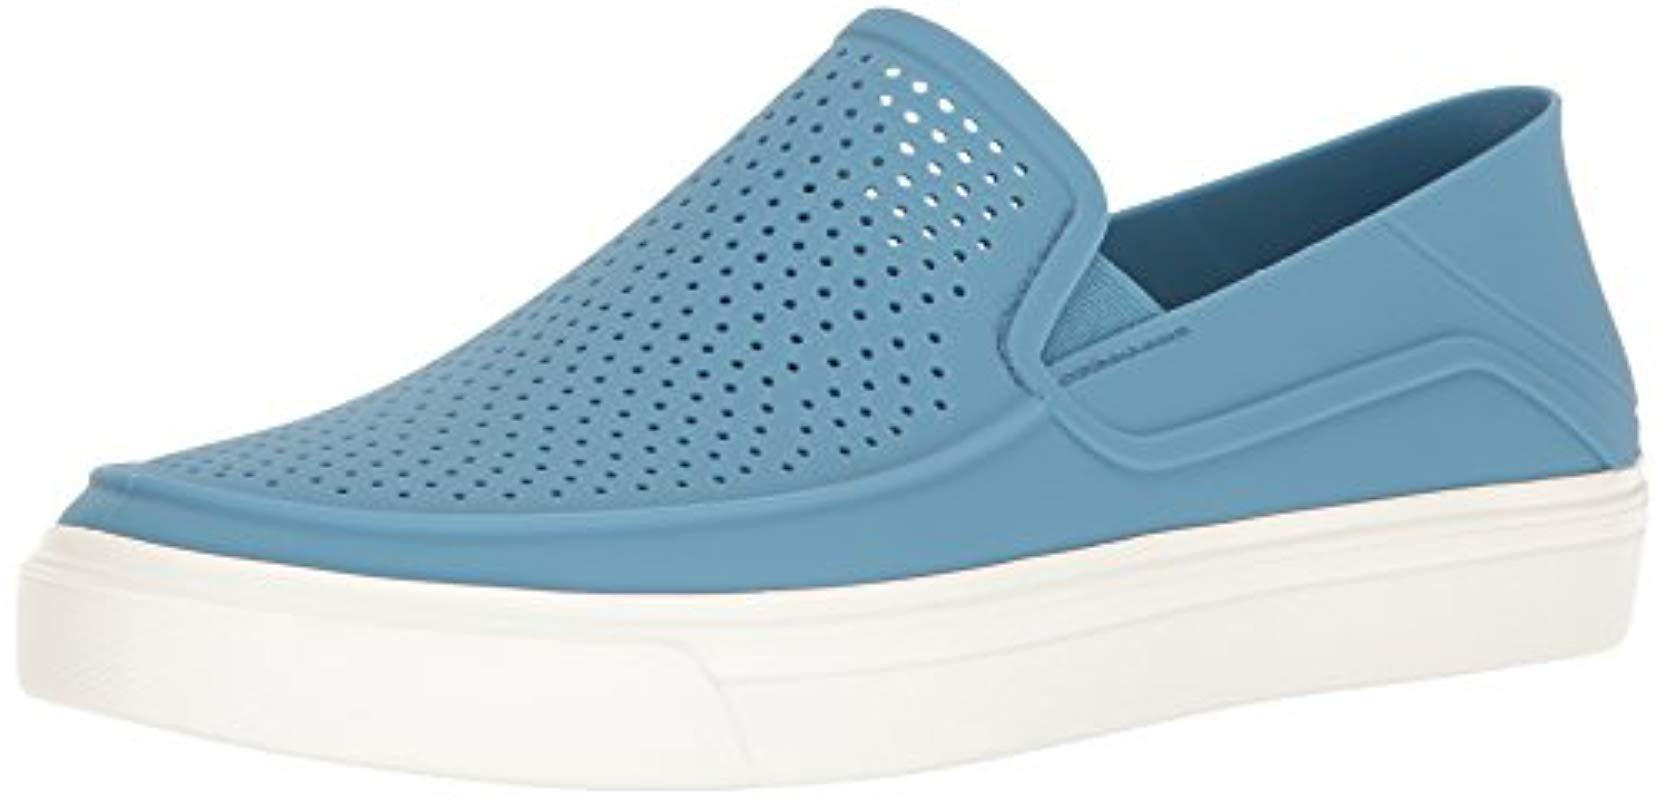 dcd3af6a8c2e4 Crocs™. Men s Blue Citilane Roka Slip-on Sneaker